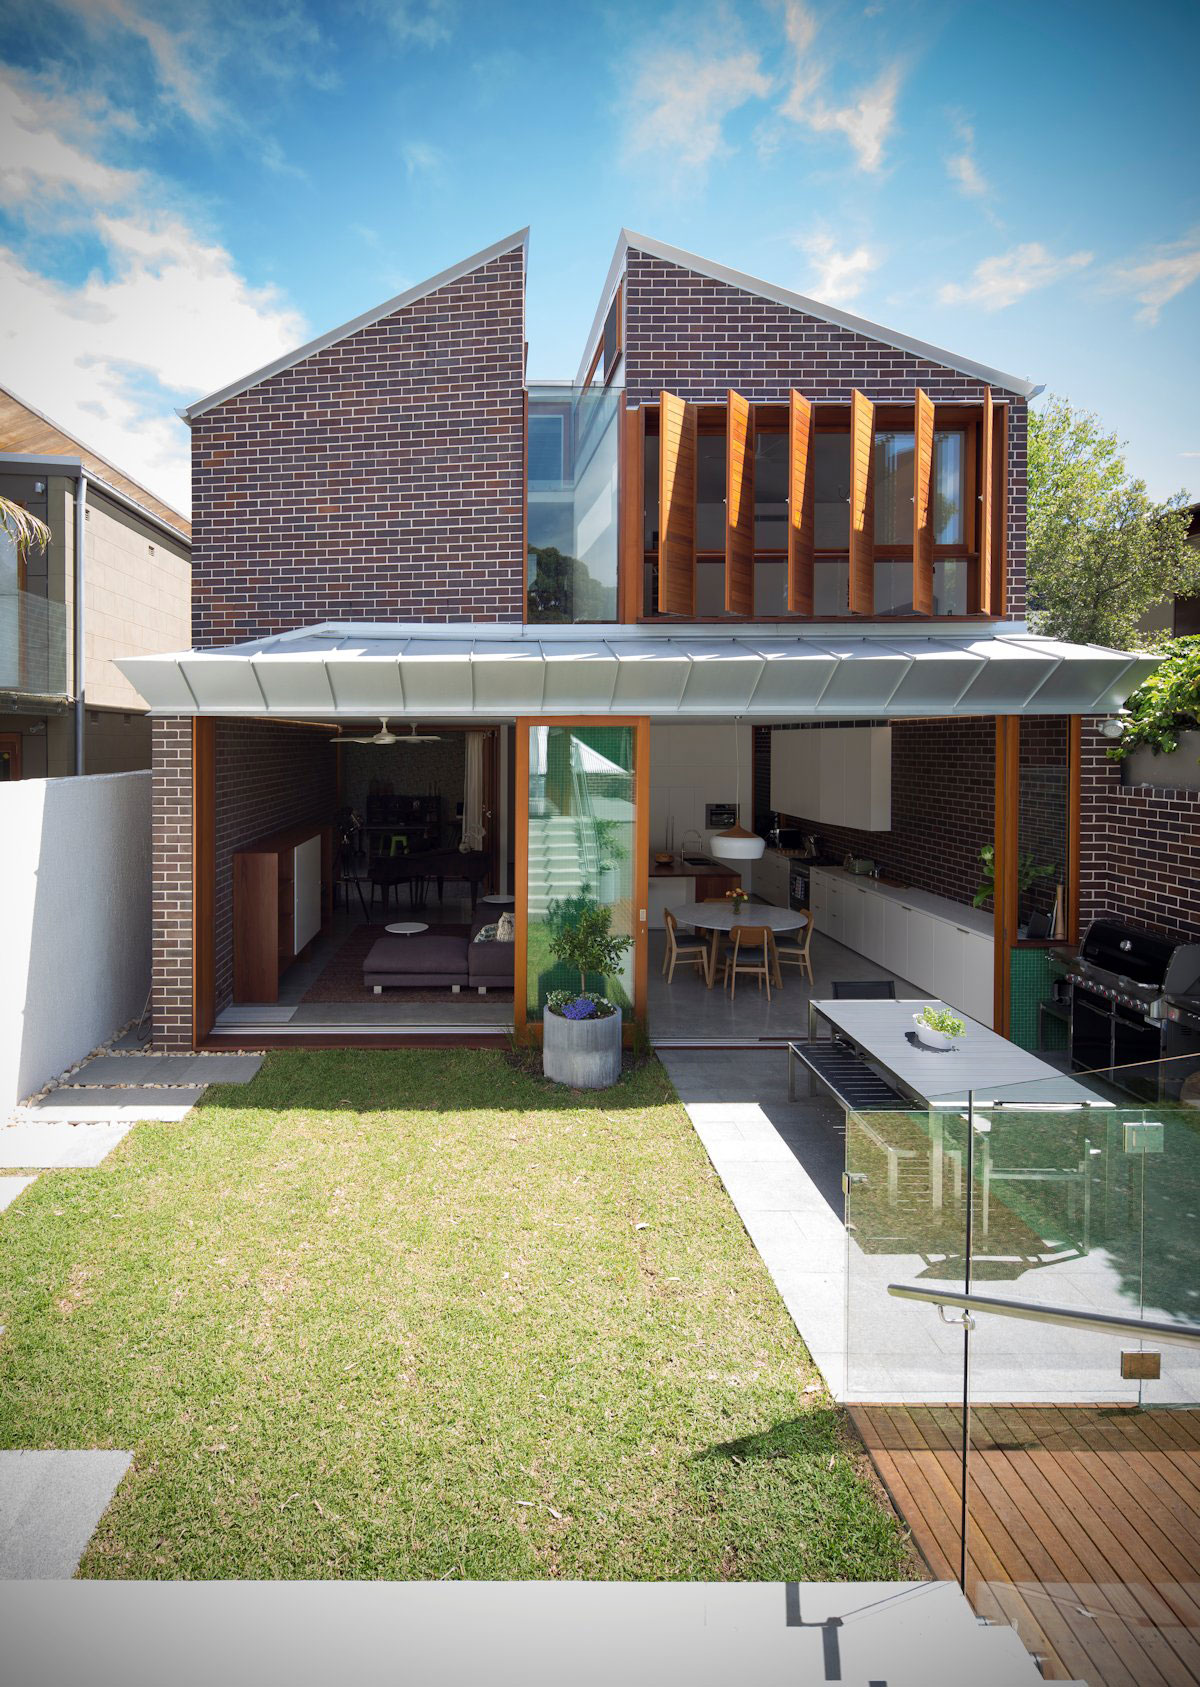 Green-House-by-Carterwilliamson-Architects Australian architecture and some beautiful houses to inspire you